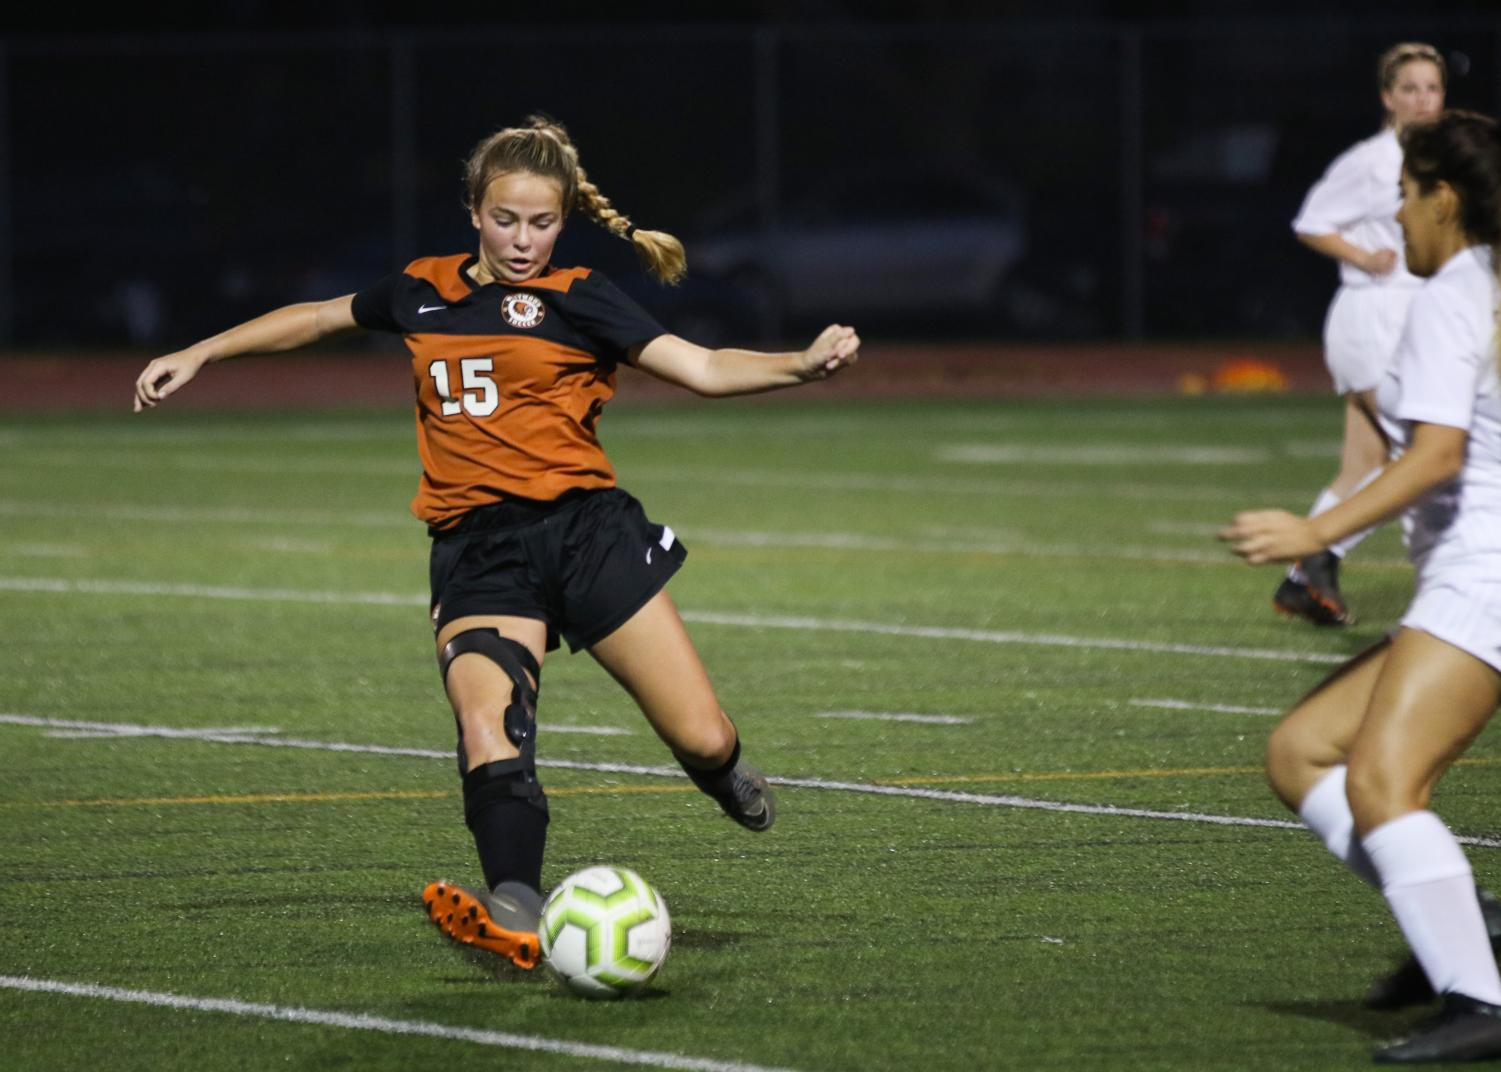 Leaning+back%2C+Cate+Defendorf+%2723+kicks+the+ball+further+down+the+field.+Defendorf+plays+midfield+so+she+helps+connect+the+offensive+and+defensive+lines.